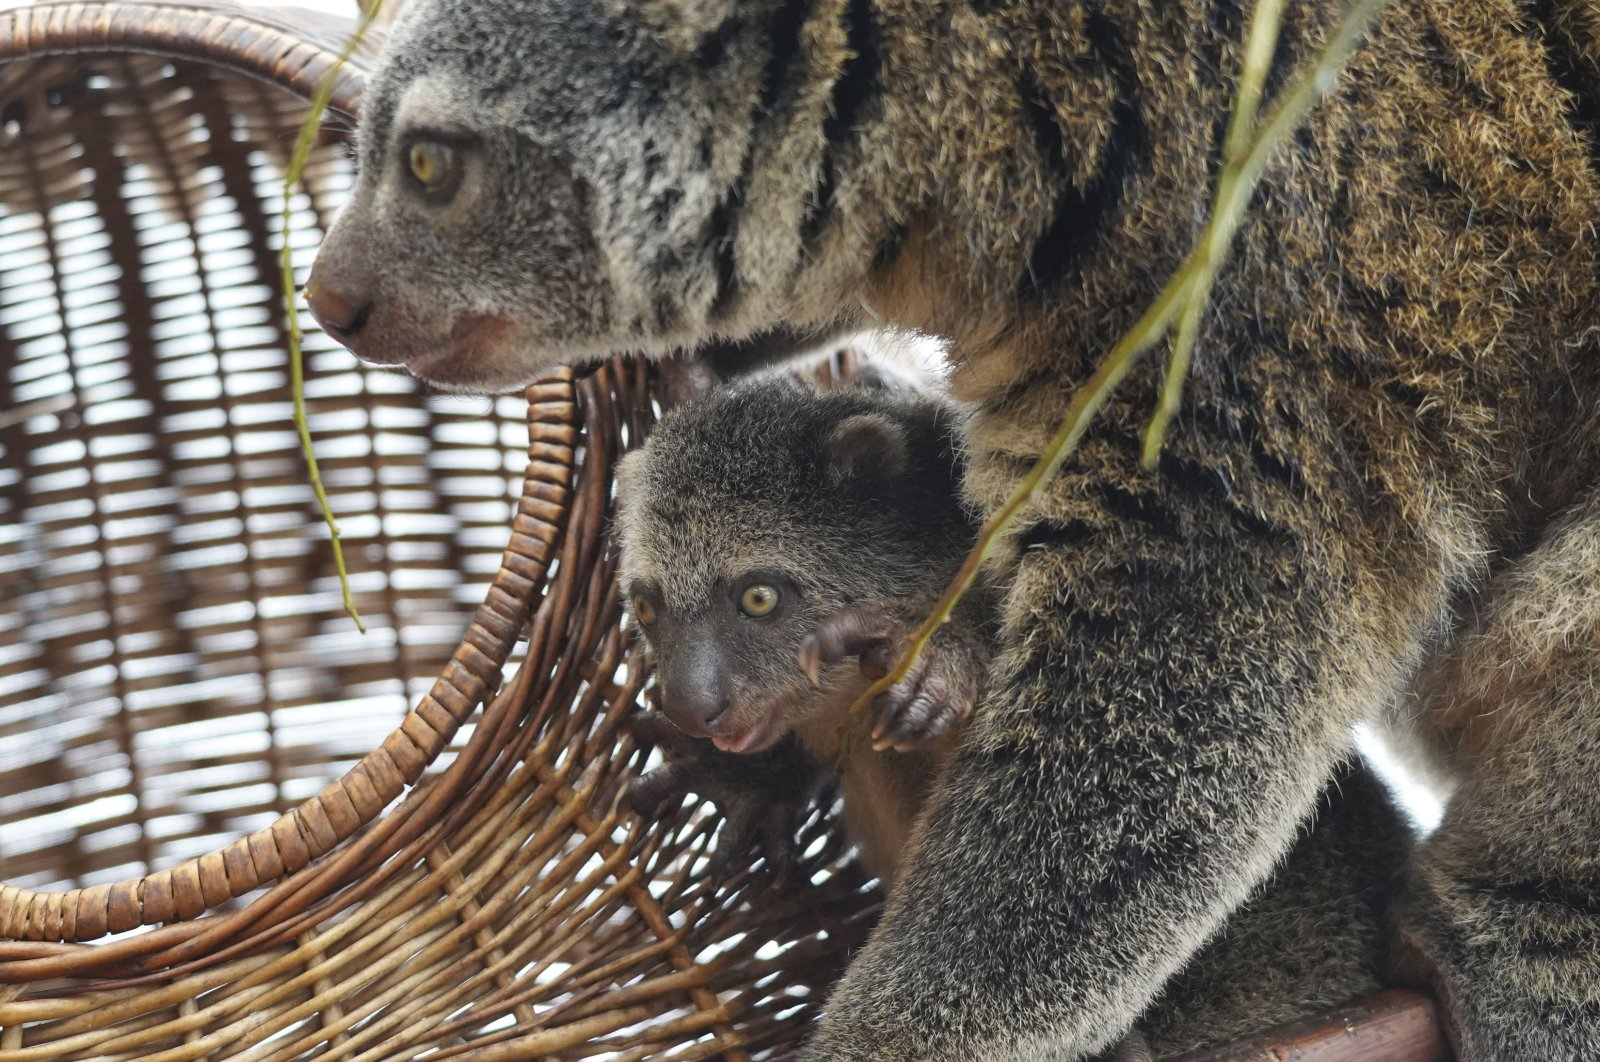 A baby of the highly endangered Indonesian cuscus bear with its mother Duzy at the Wroclaw Zoo in Wroclaw, Poland on Feb. 16, 2021. (AP Photo)